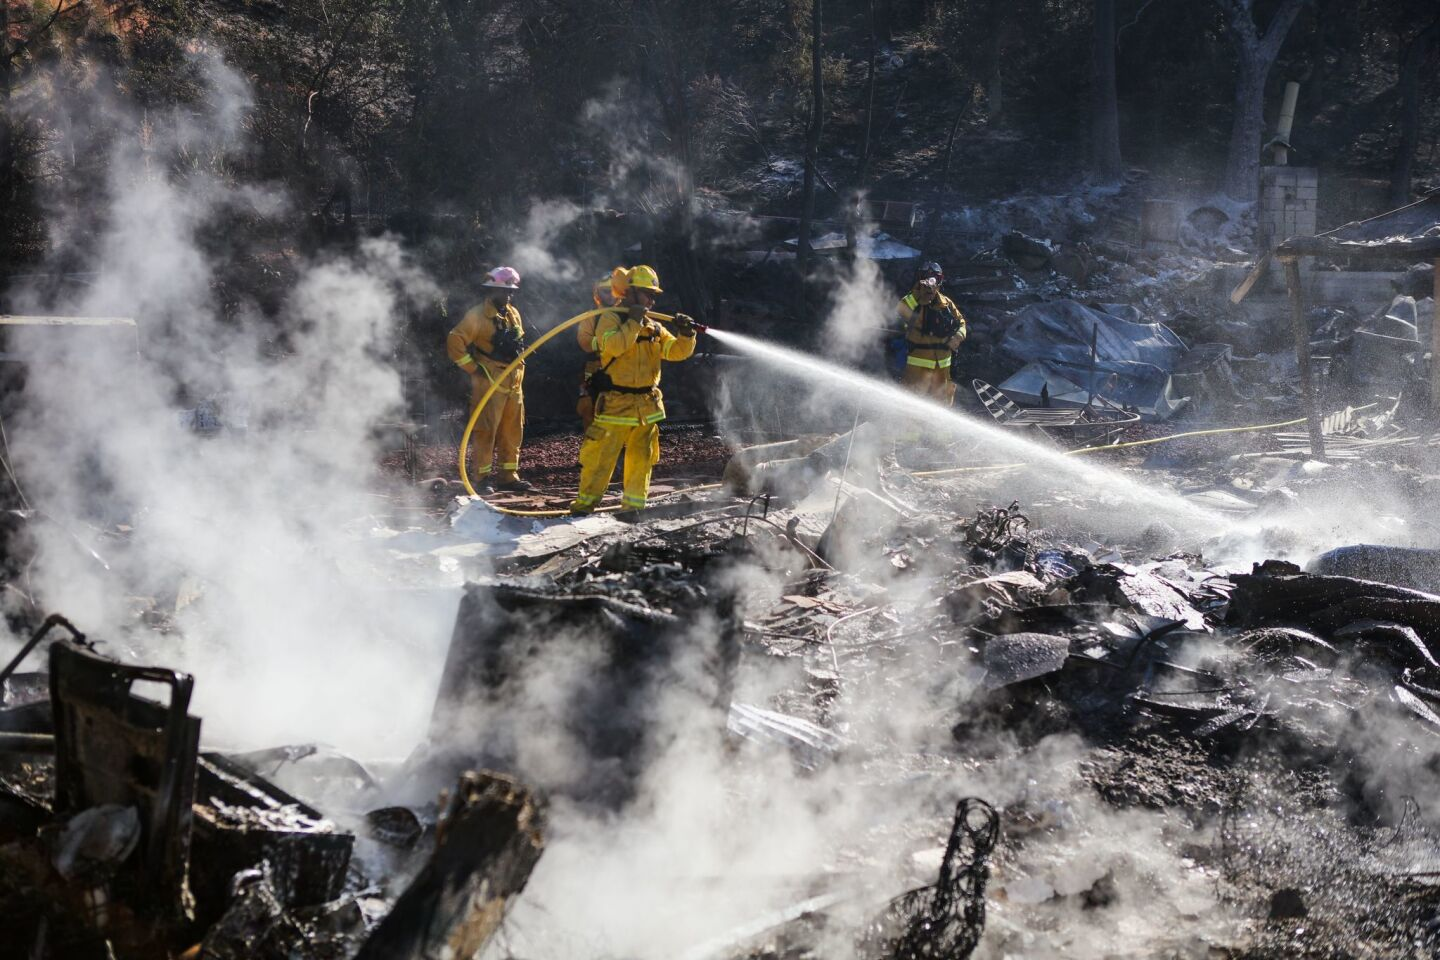 Firefighters work to contain embers on the remains of a house destroyed by the Clayton fire in Lower Lake, California.